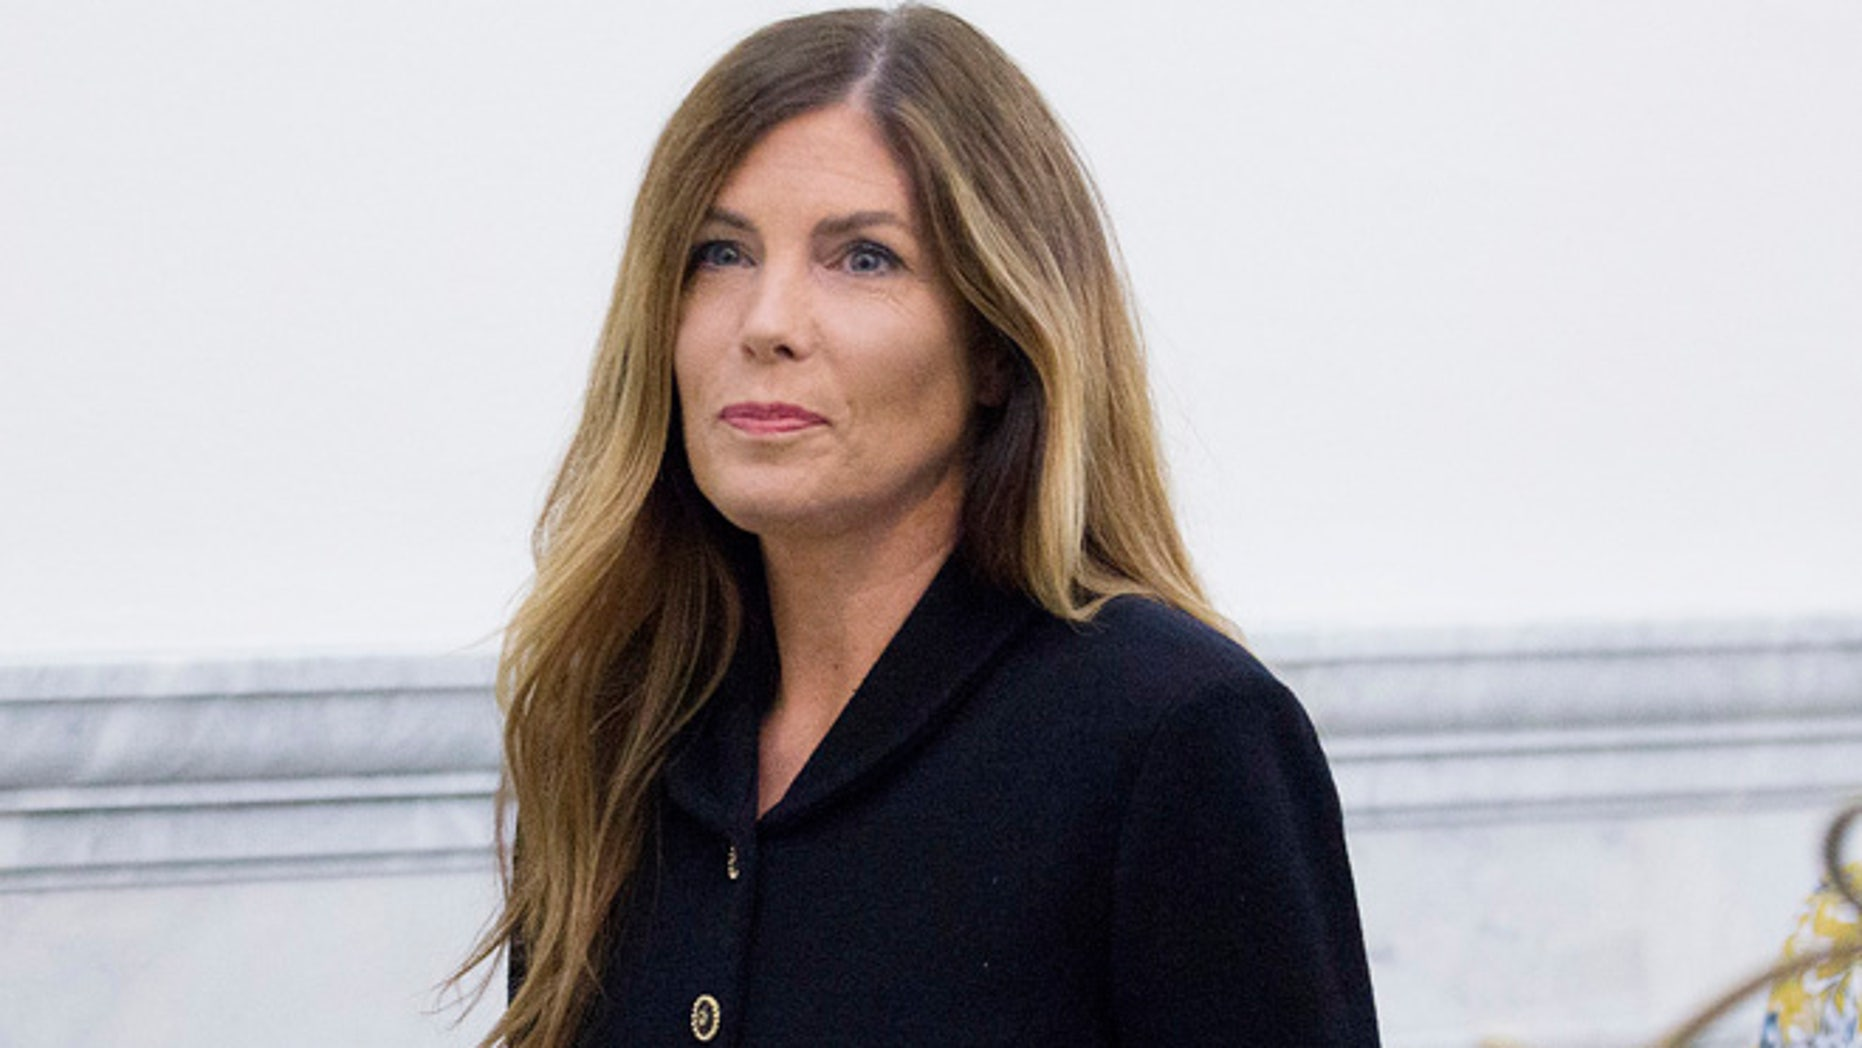 Pennsylvania Attorney General Kathleen Kane walks down a hall at the Montgomery County Courthouse, Monday, Aug. 15, 2016, in Norristown, Pa., where closing arguments are expected during her perjury and obstruction trial. (Jessica Griffin/The Philadelphia Inquirer via AP, Pool)